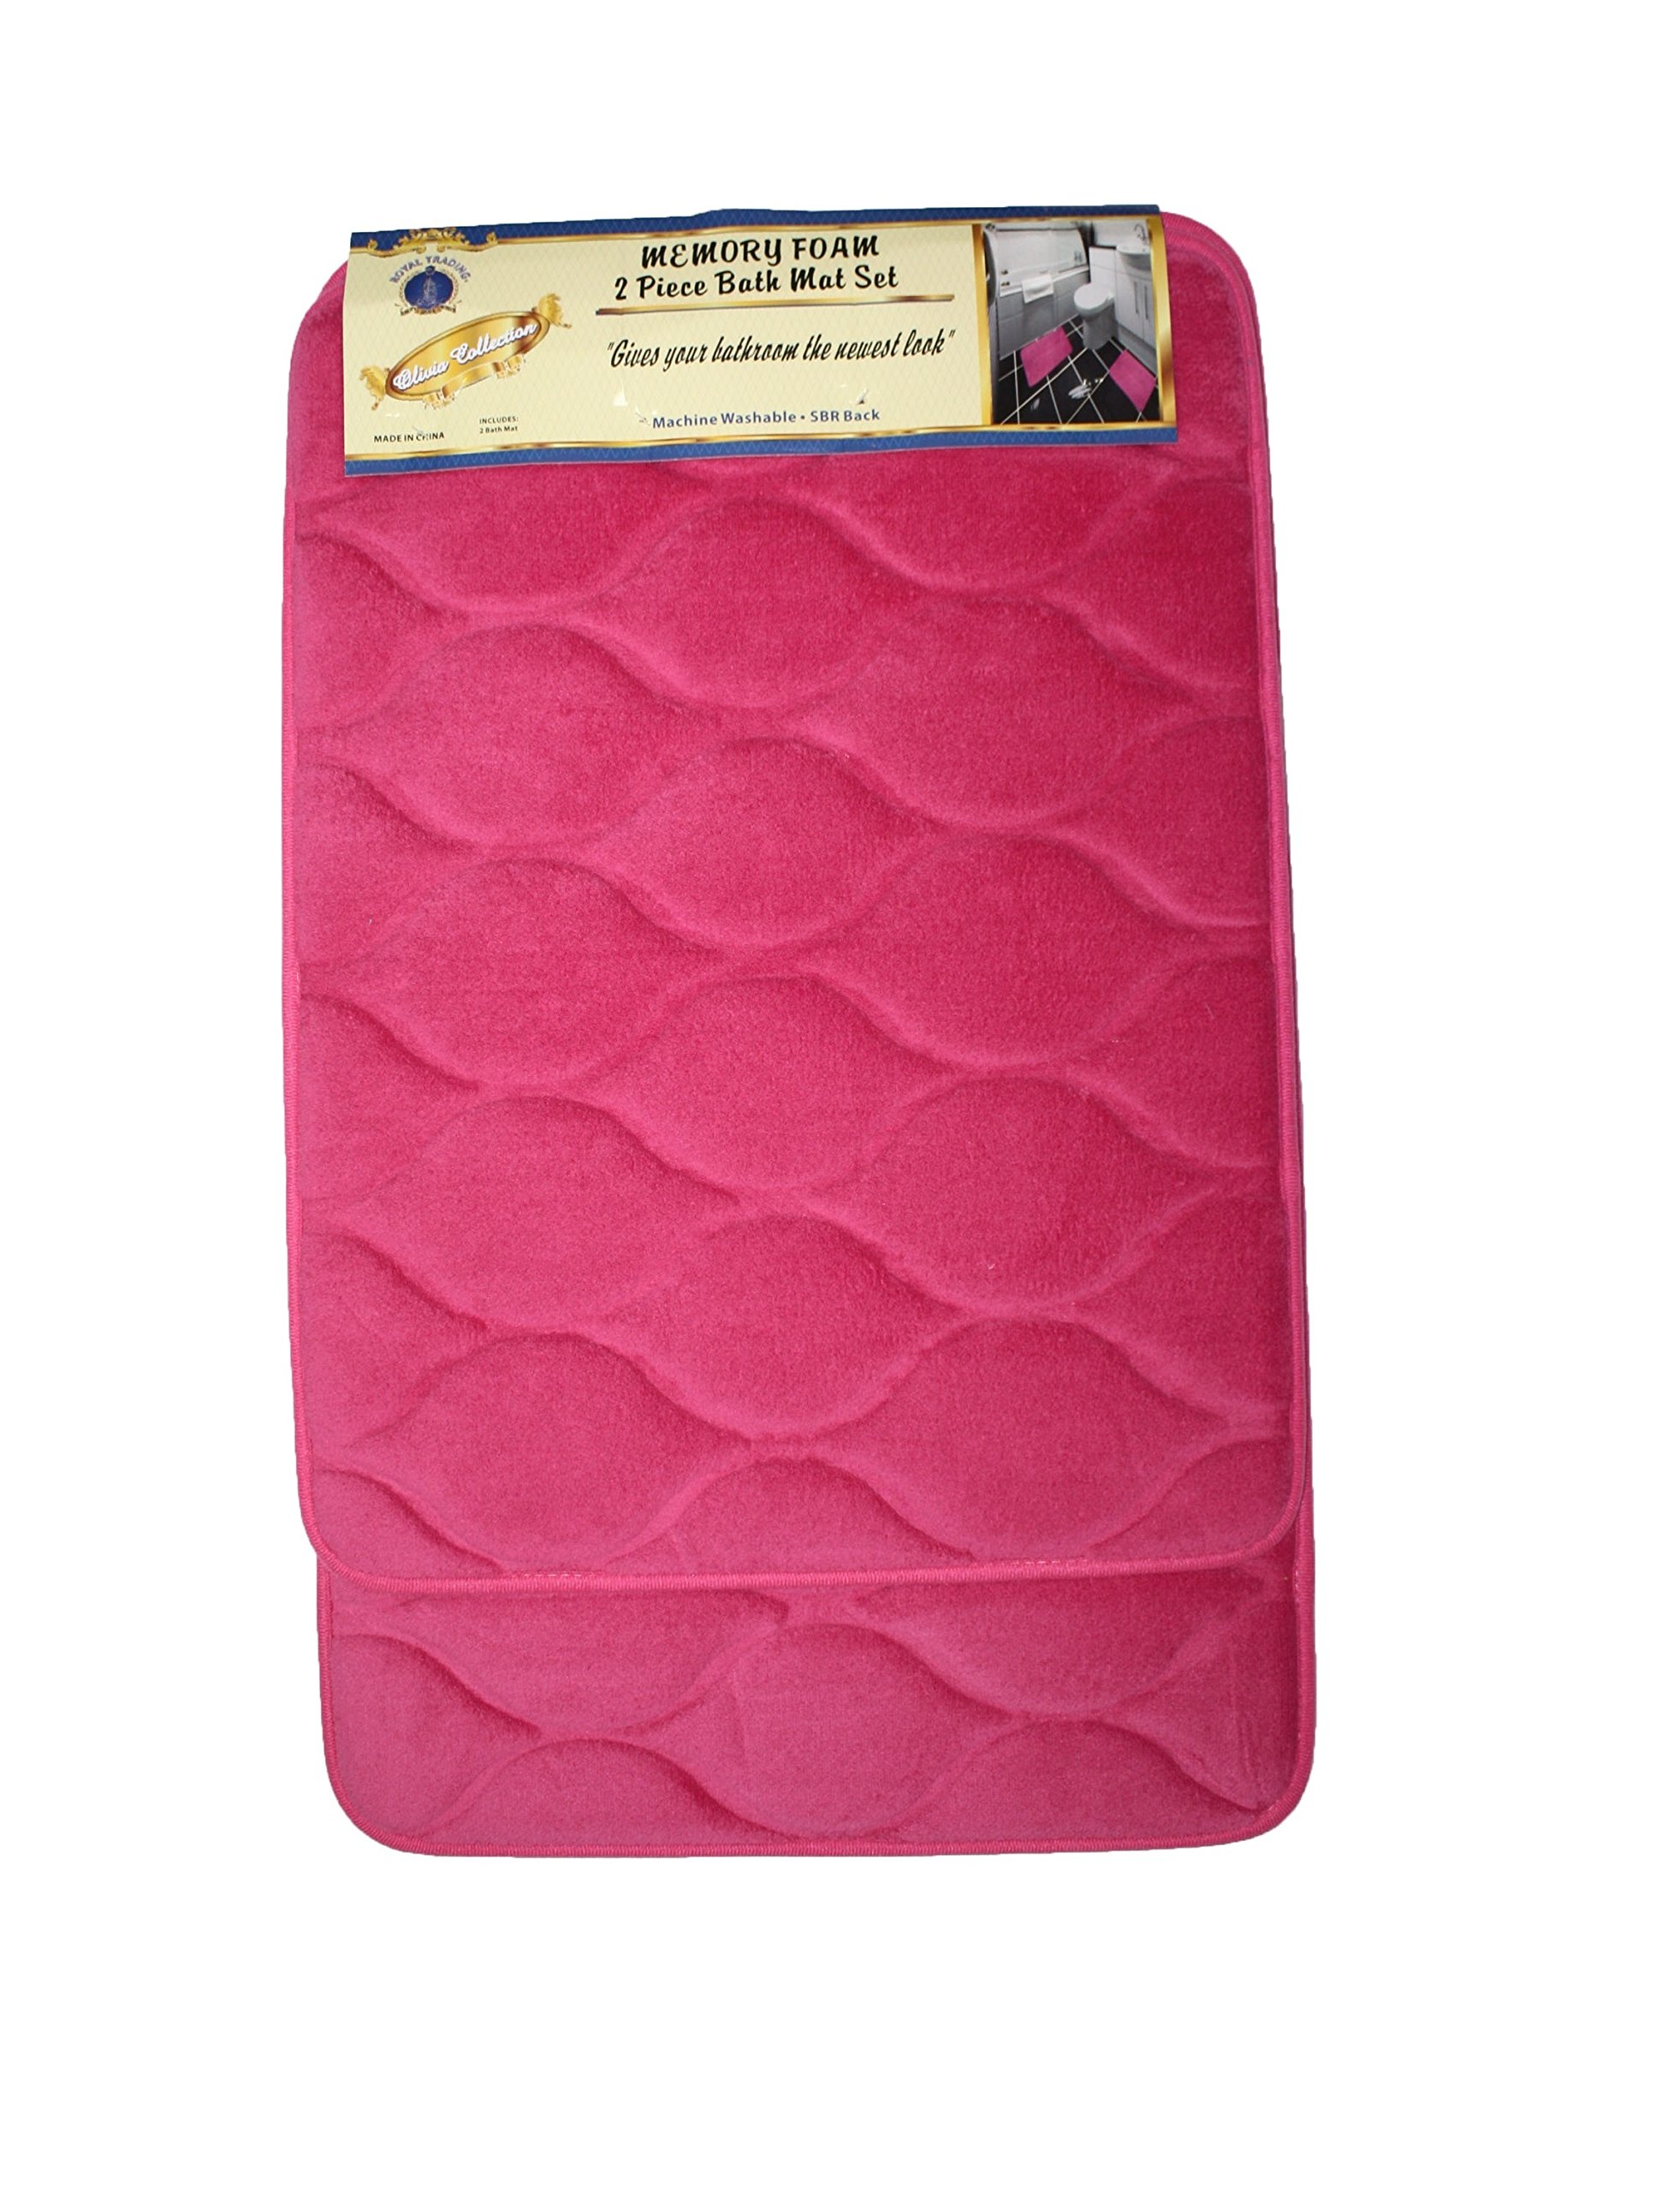 2 Piece Elegant Memory Foam Bath Mat Set, Extra Soft and Anti Slip Backing Luxury Bath Rugs (Hot Pink)